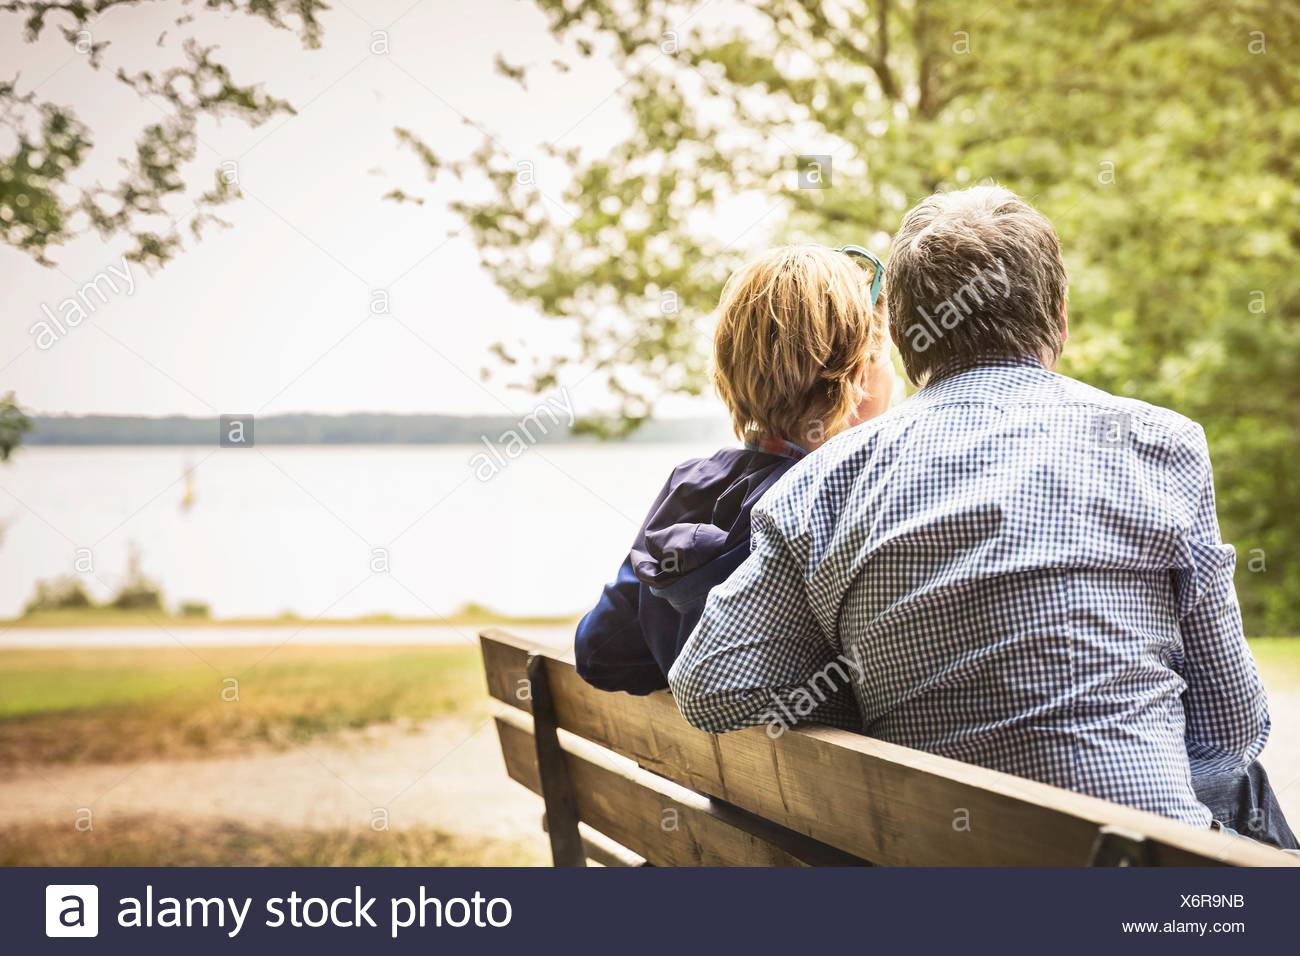 Rear view of adult couple on lakeside park bench - Stock Image